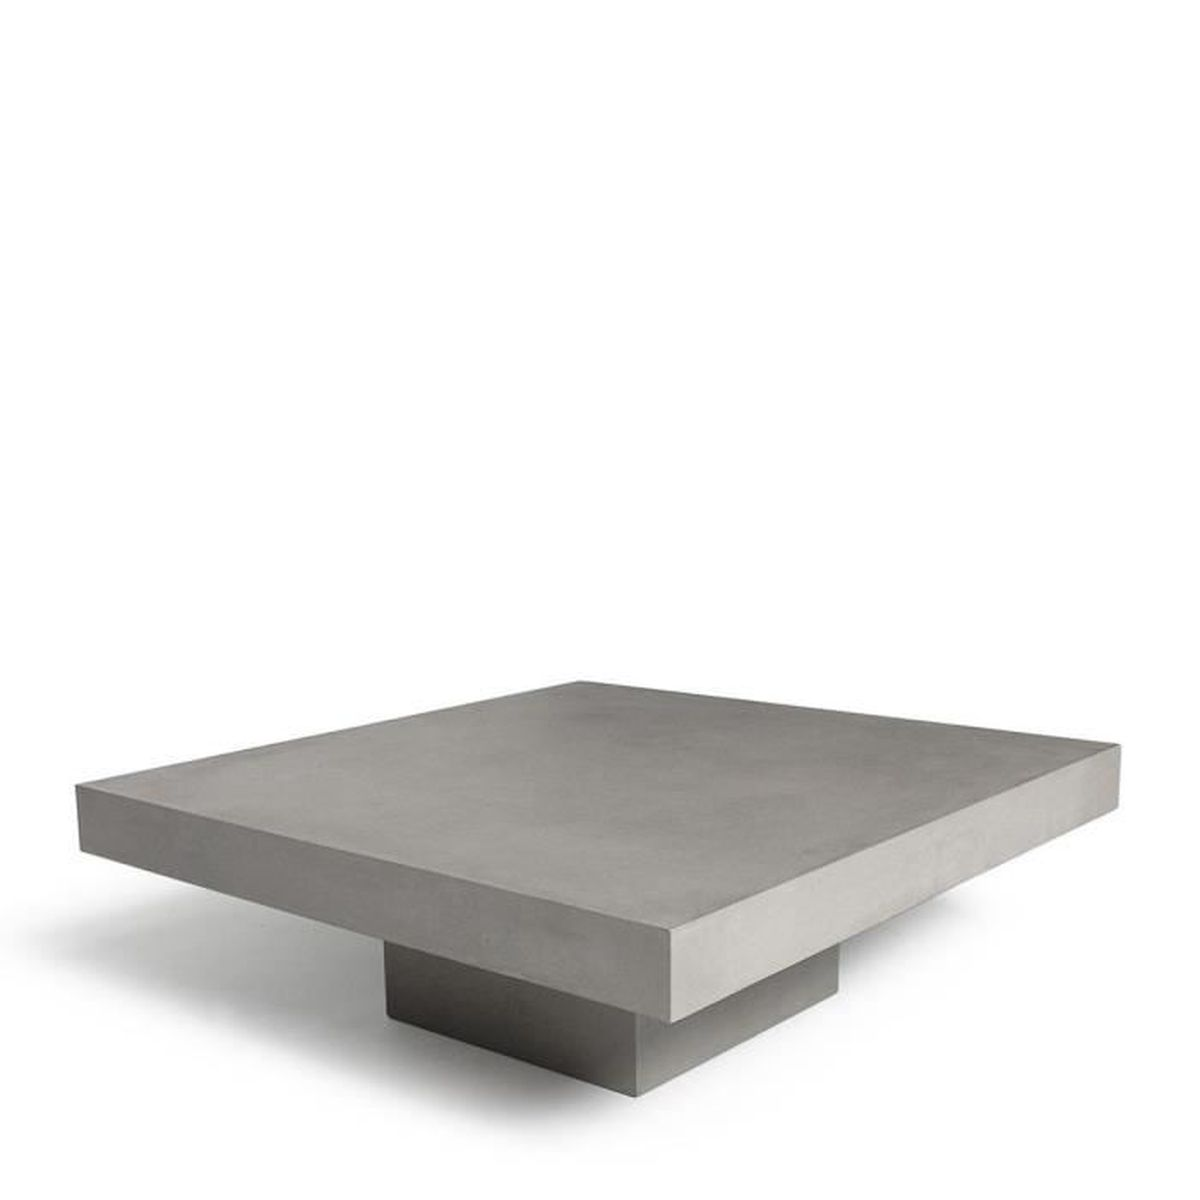 table basse carr e b ton t square couleur gris b ton achat vente table basse table basse. Black Bedroom Furniture Sets. Home Design Ideas